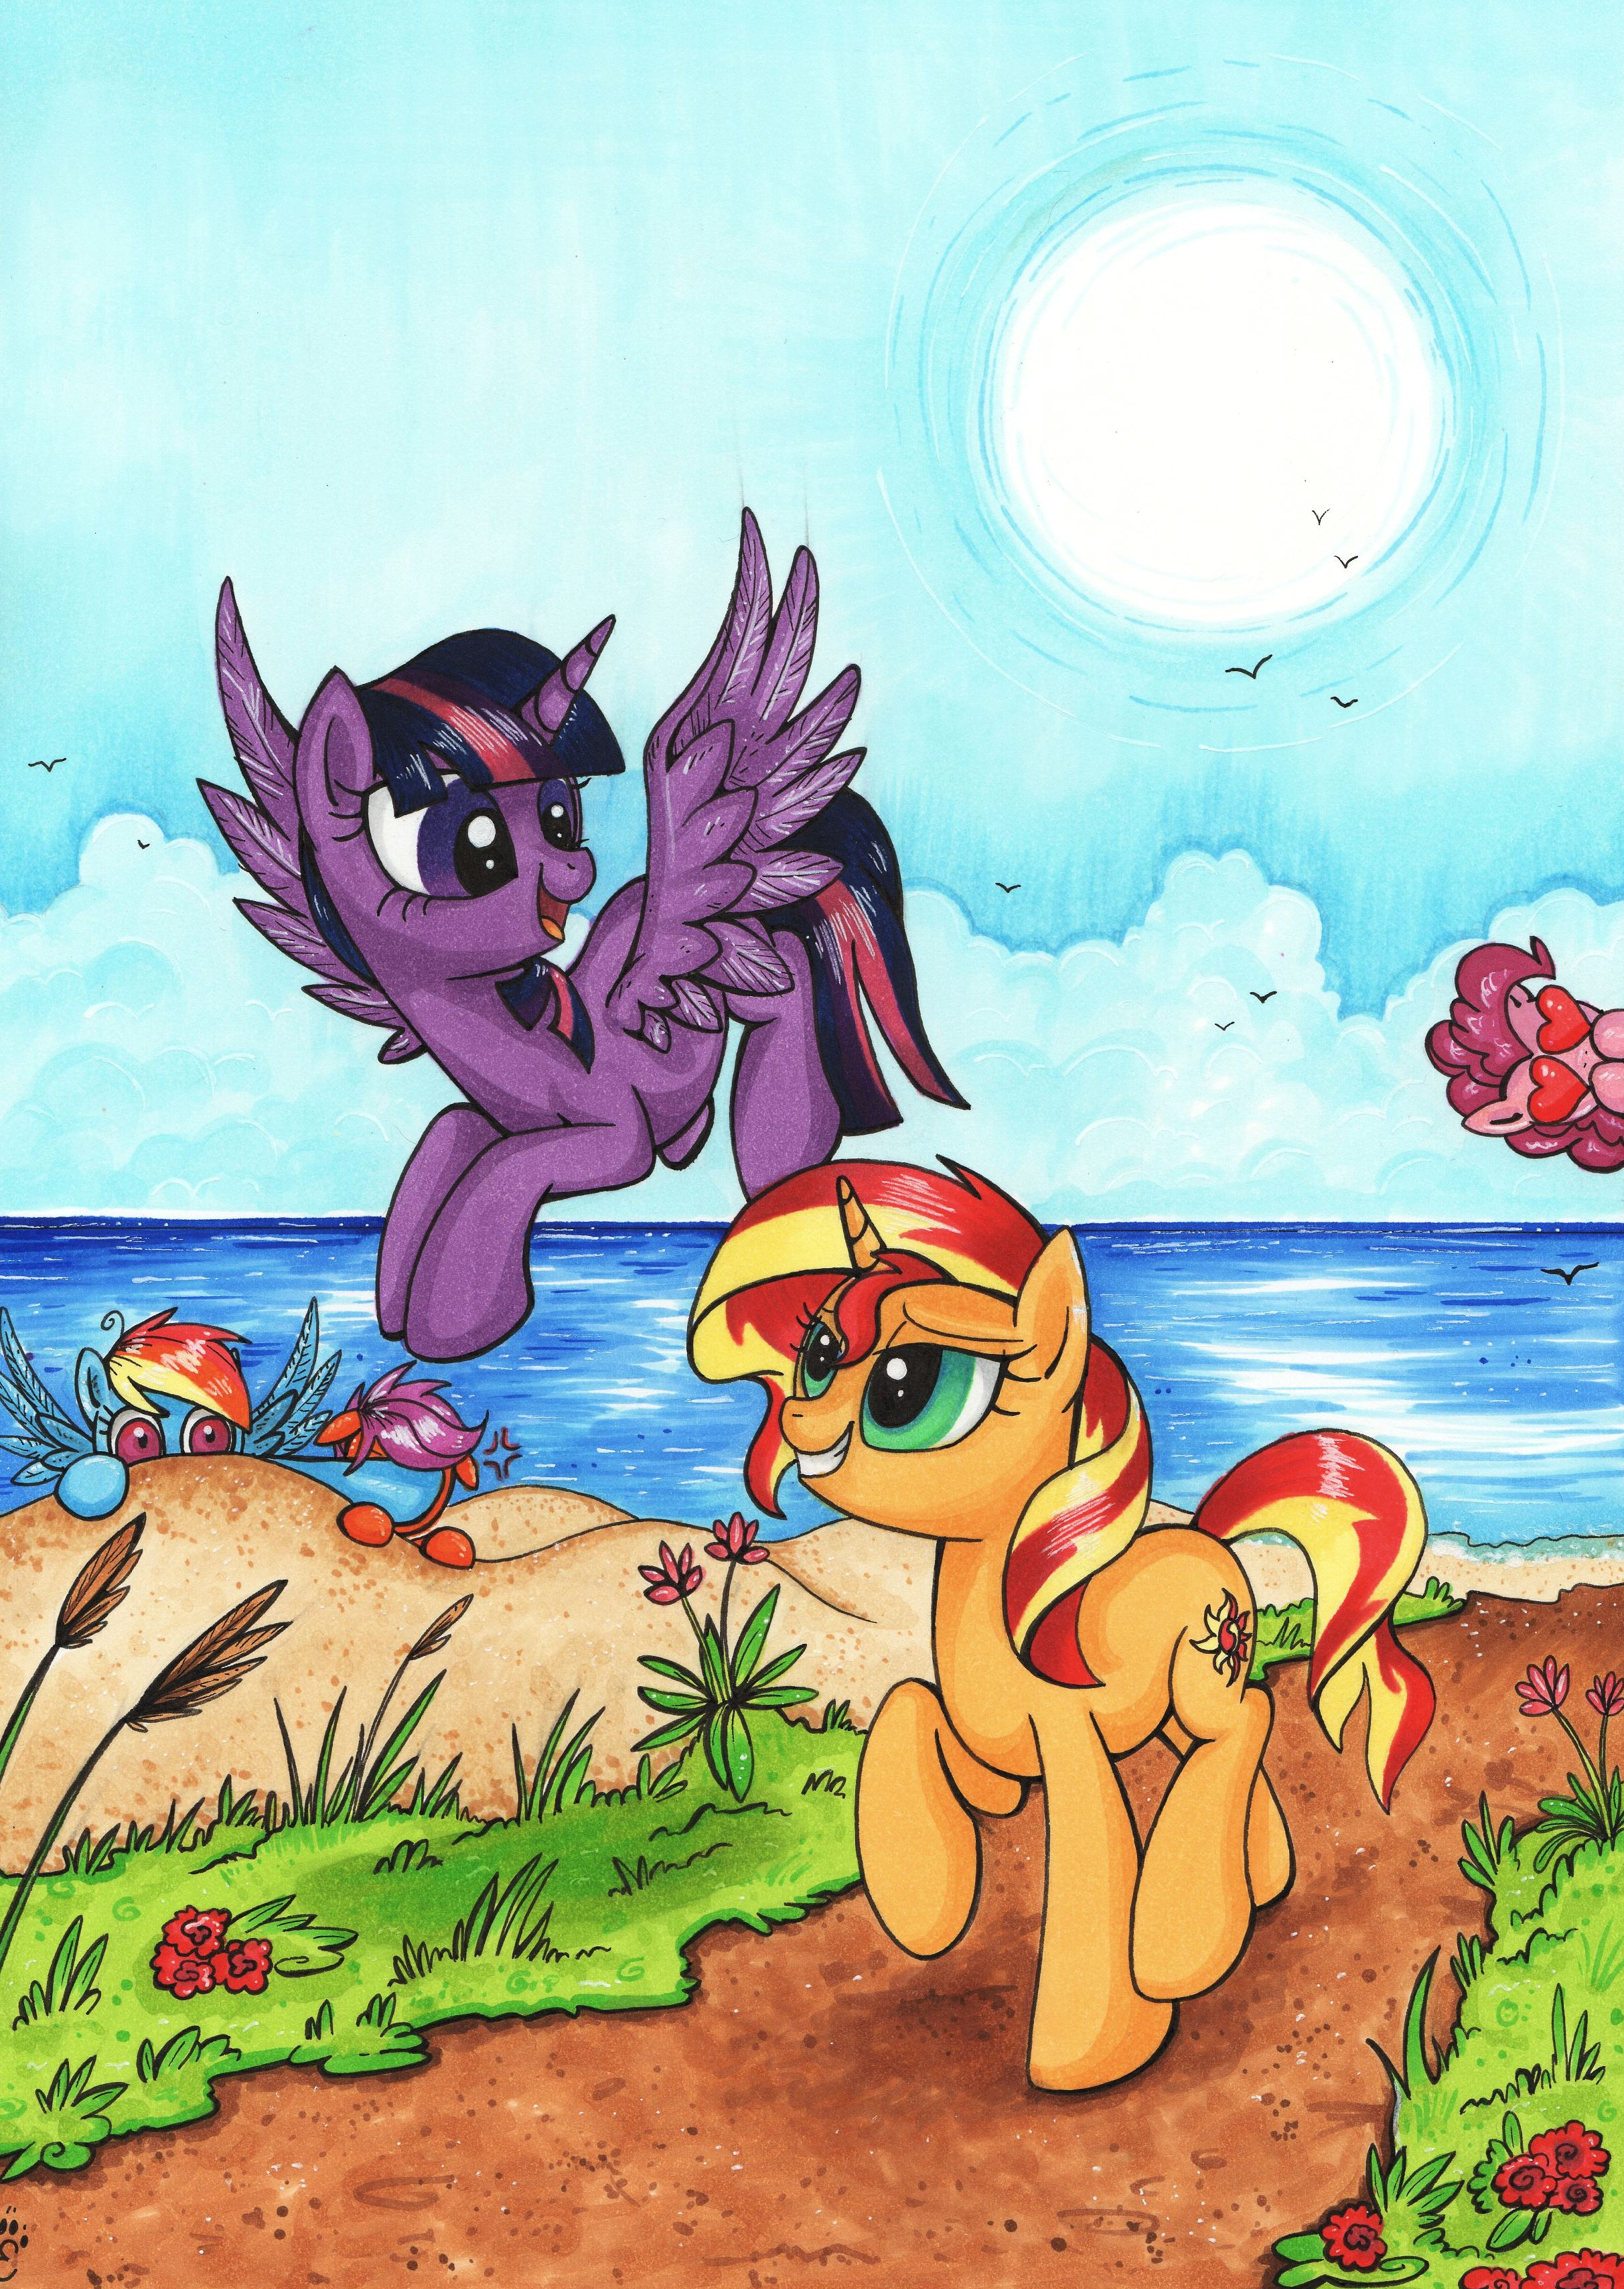 865372__safe_twilight+sparkle_rainbow+da